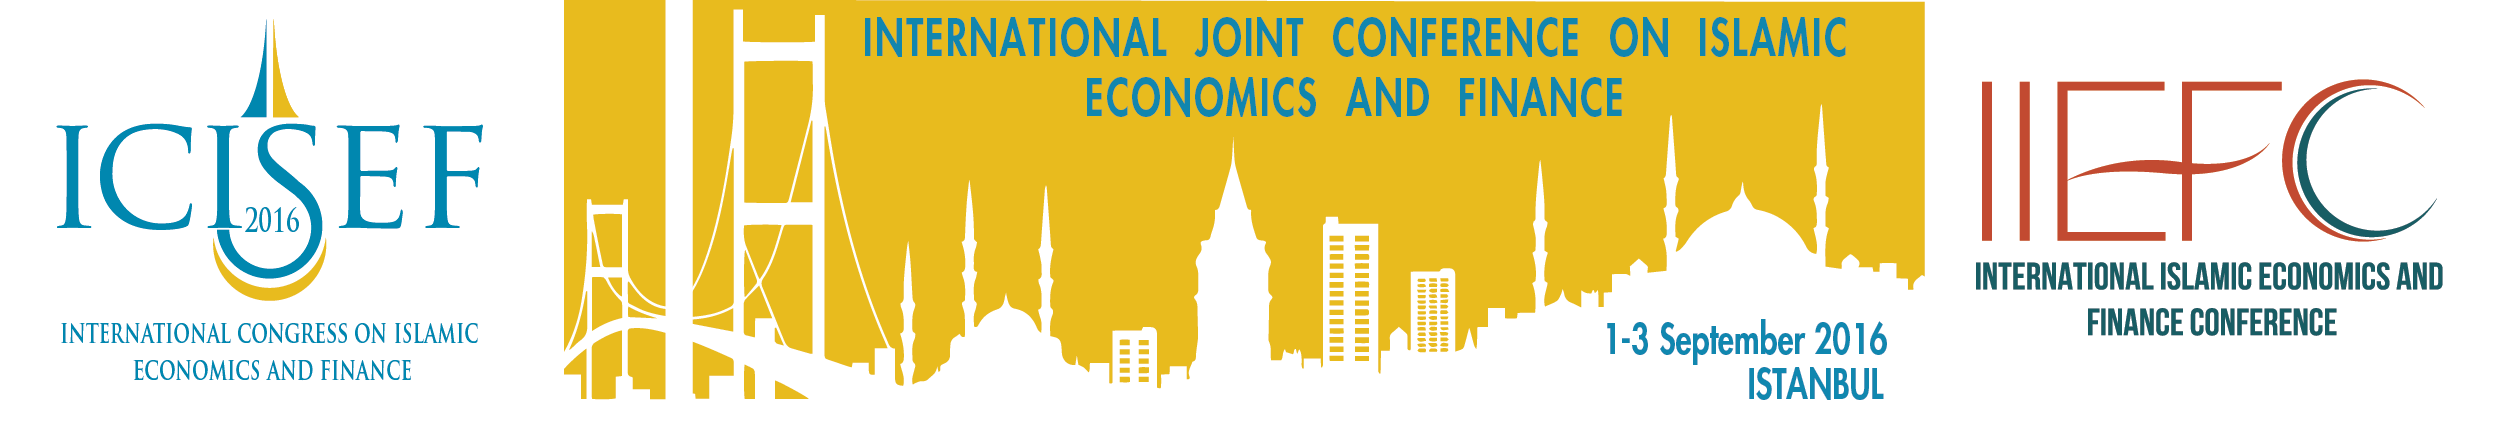 Call for Papers: International Joint Conference on Islamic Economics and Finance (IJCIEF)